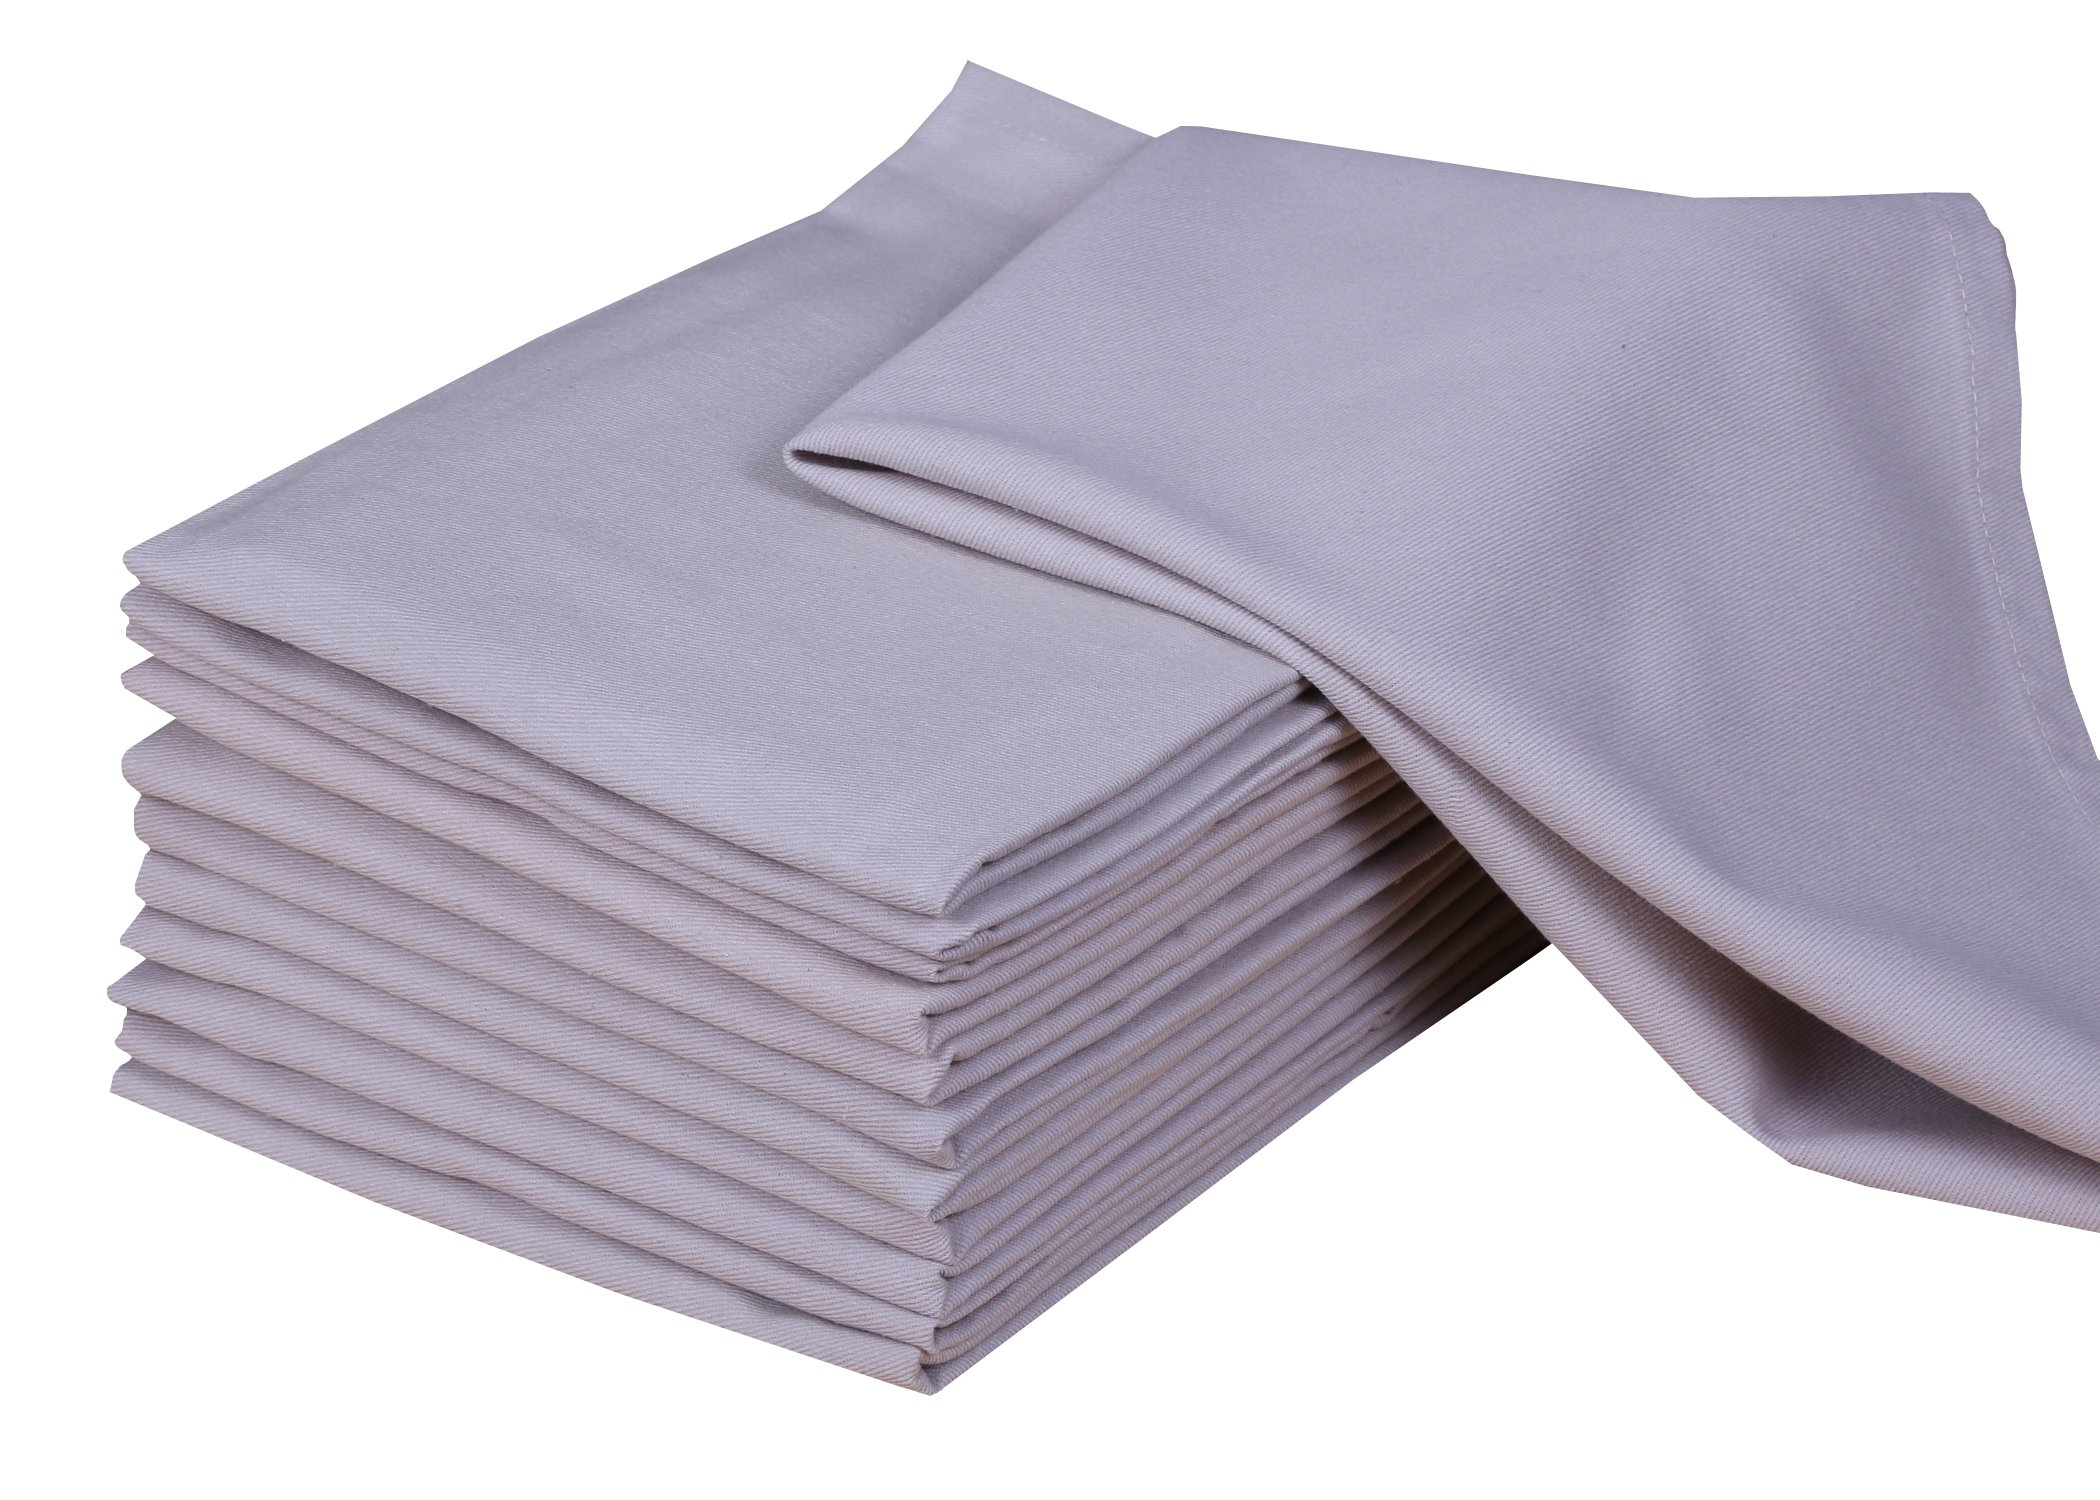 Cotton Napkin Set of 12 (18 x 18 Inches), Beige, 100% Cotton, Highly Absorbent, Machine Washable By CASA DECORS